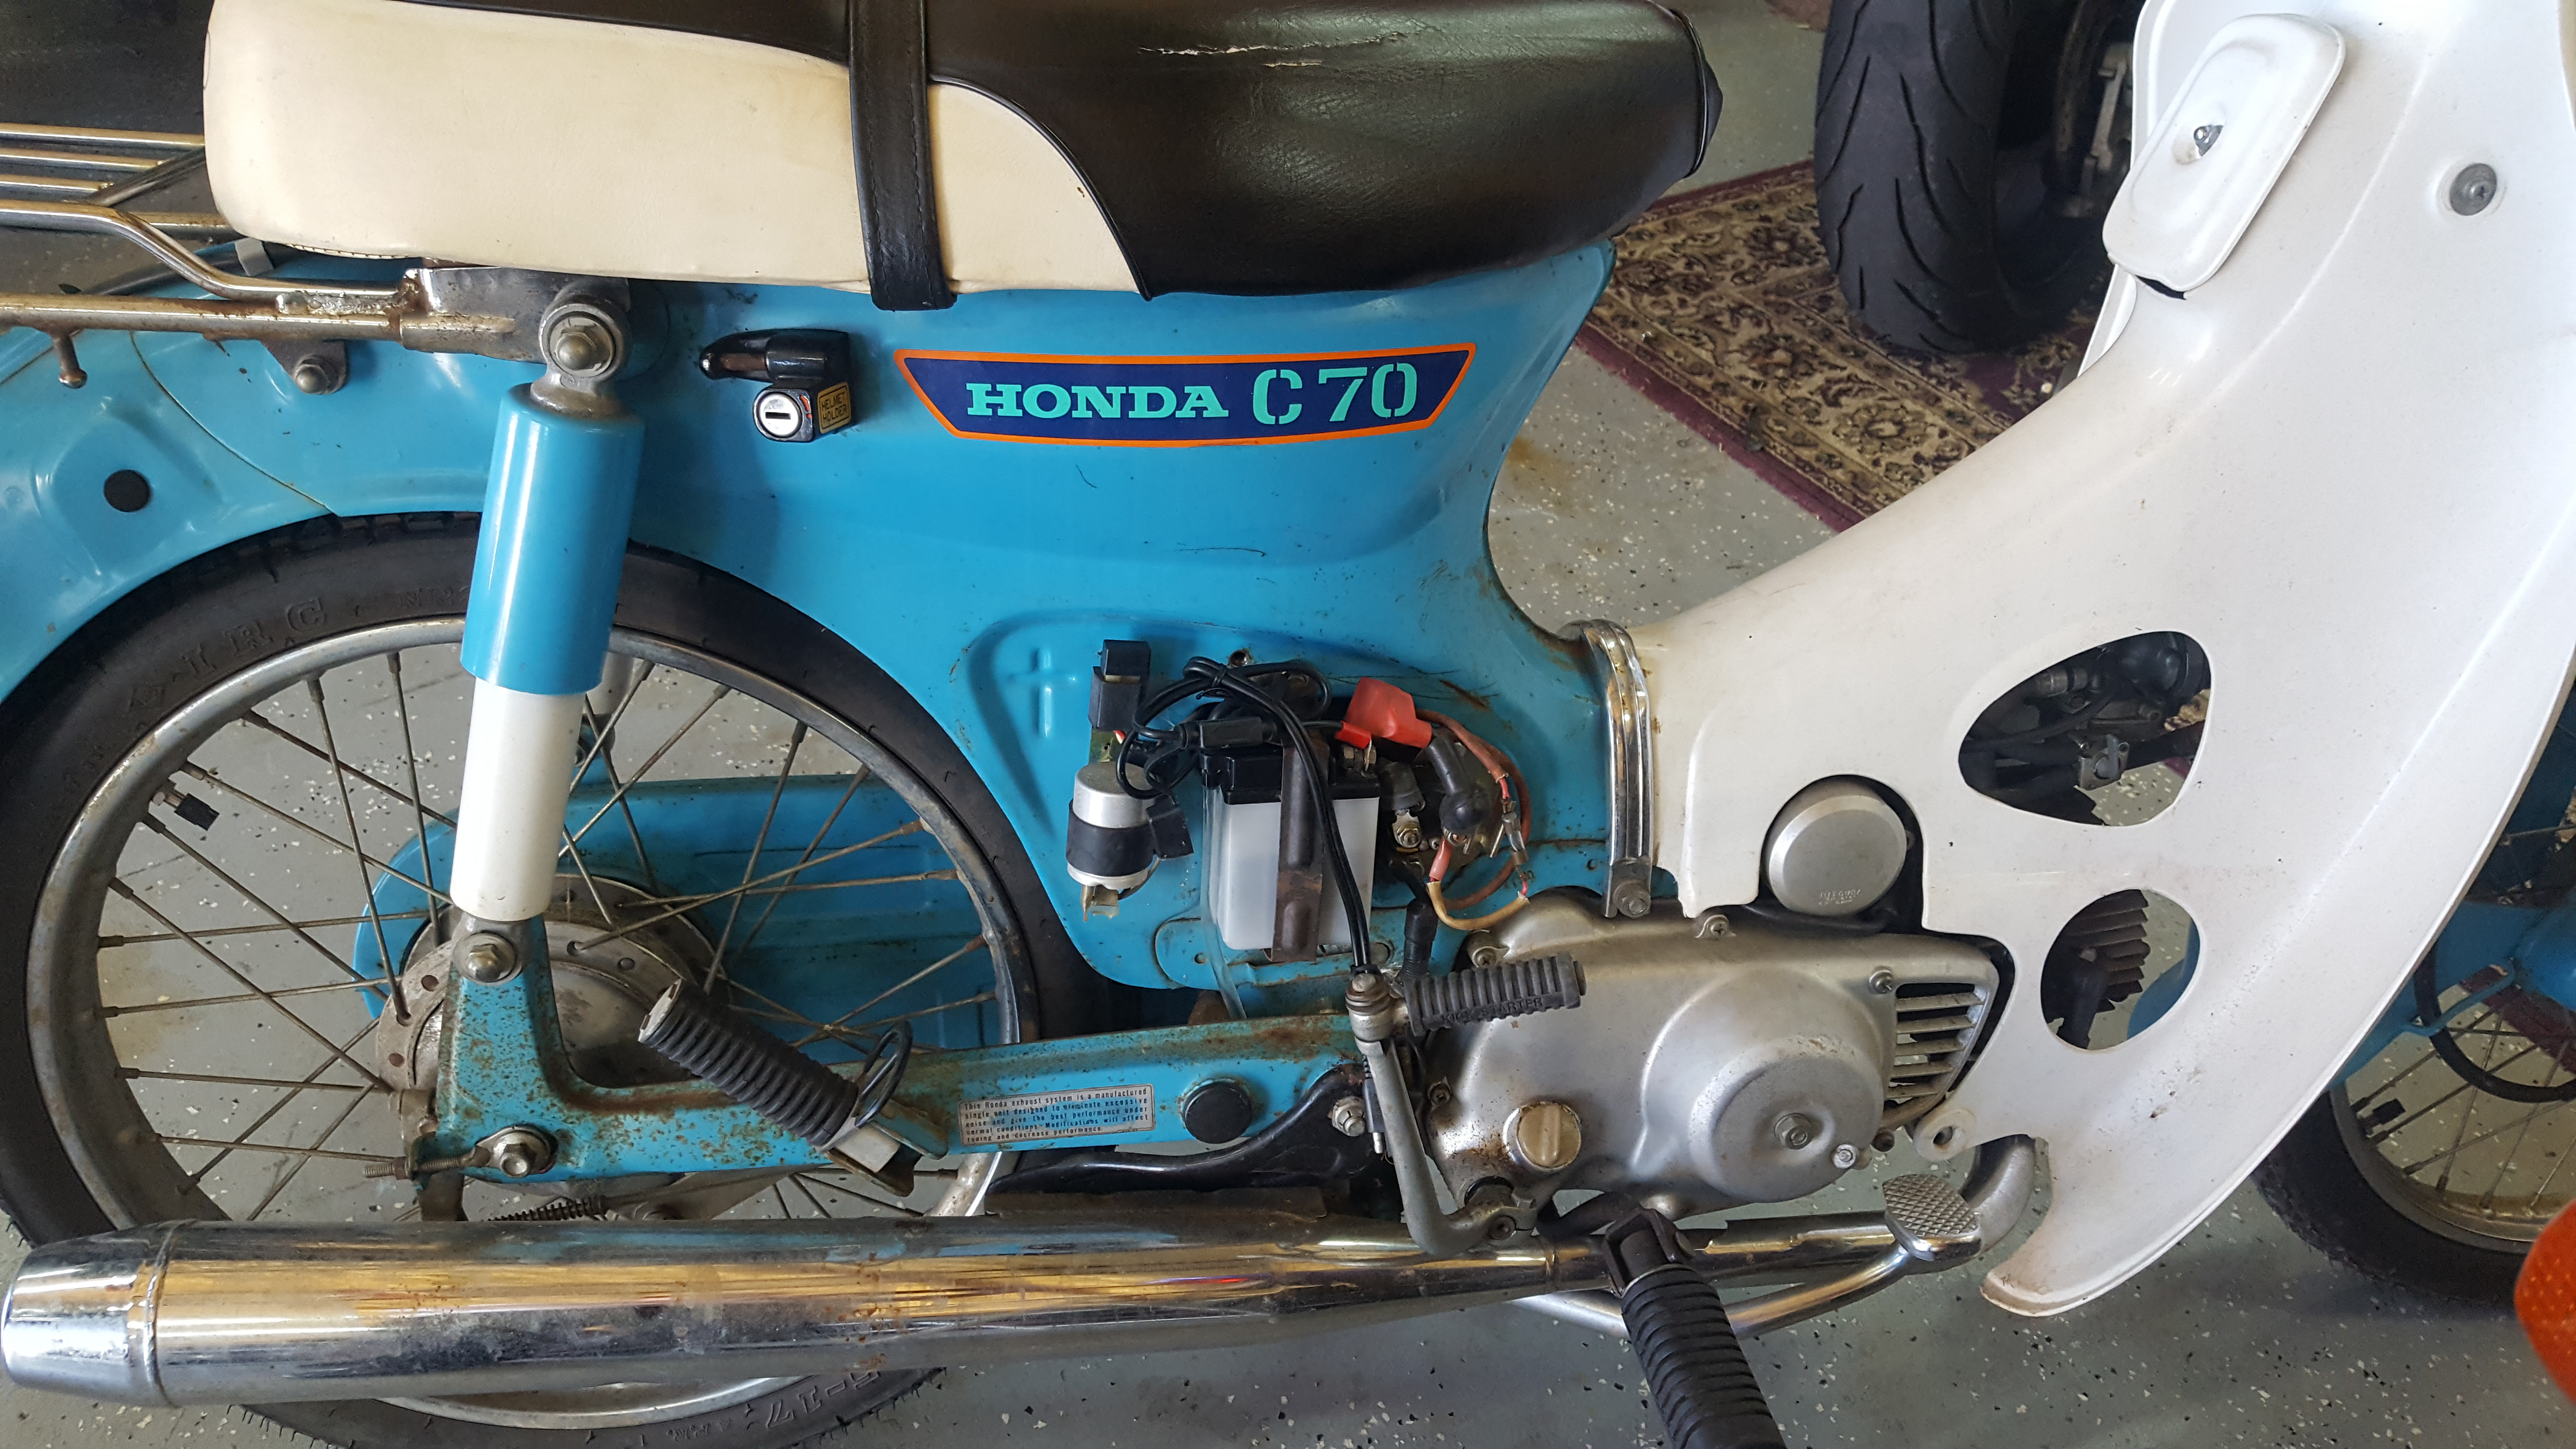 1980 honda c70 wiring c70 electric starter issue  1980  page 2 lilhonda com  c70 electric starter issue  1980